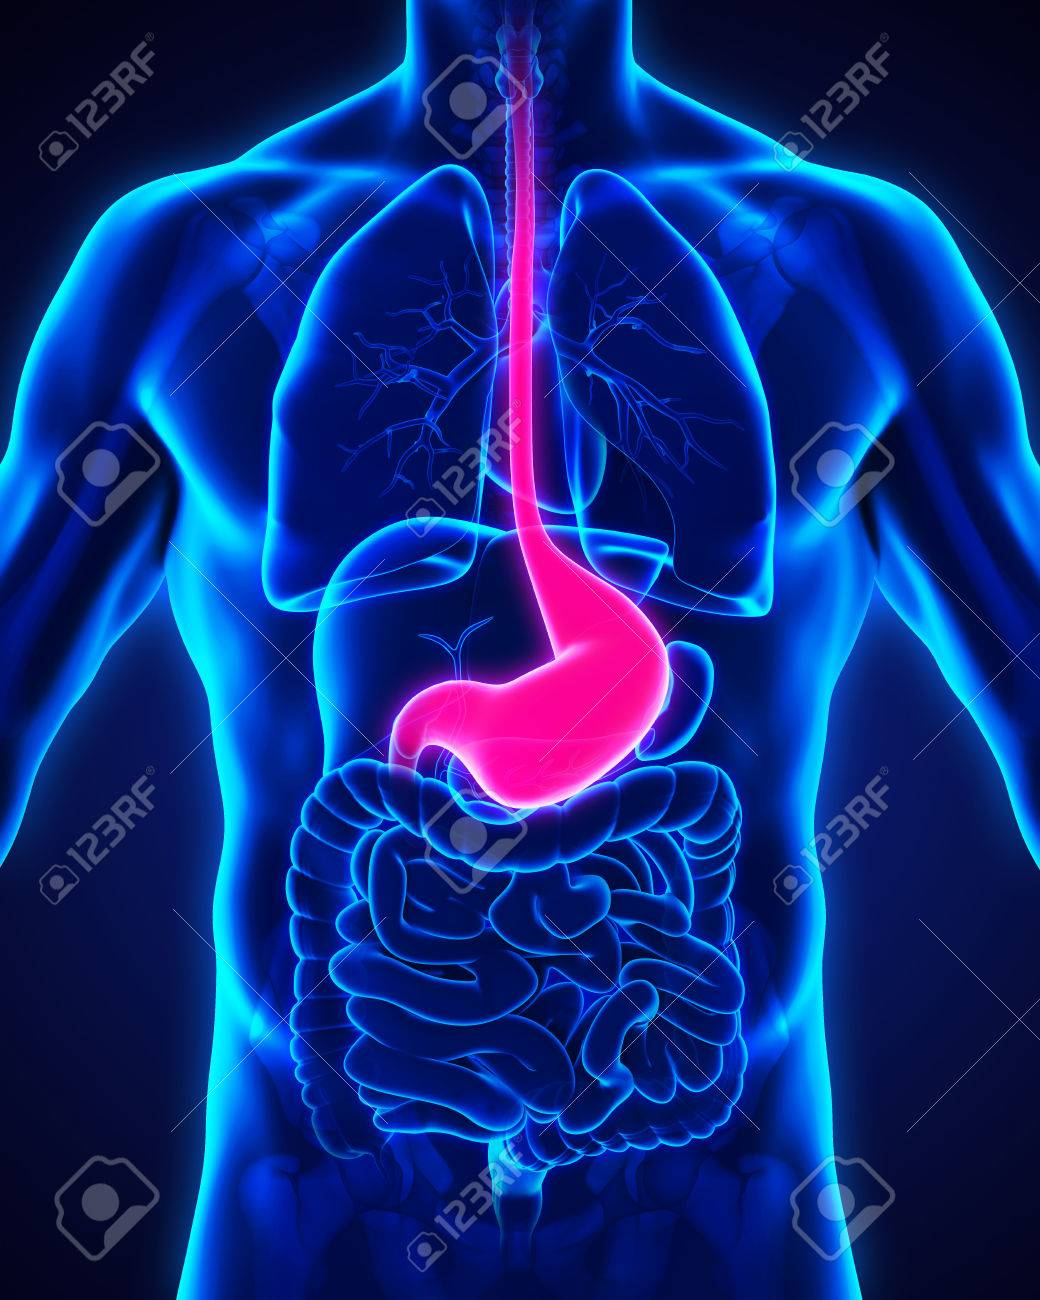 Human Stomach Anatomy Stock Photo Picture And Royalty Free Image